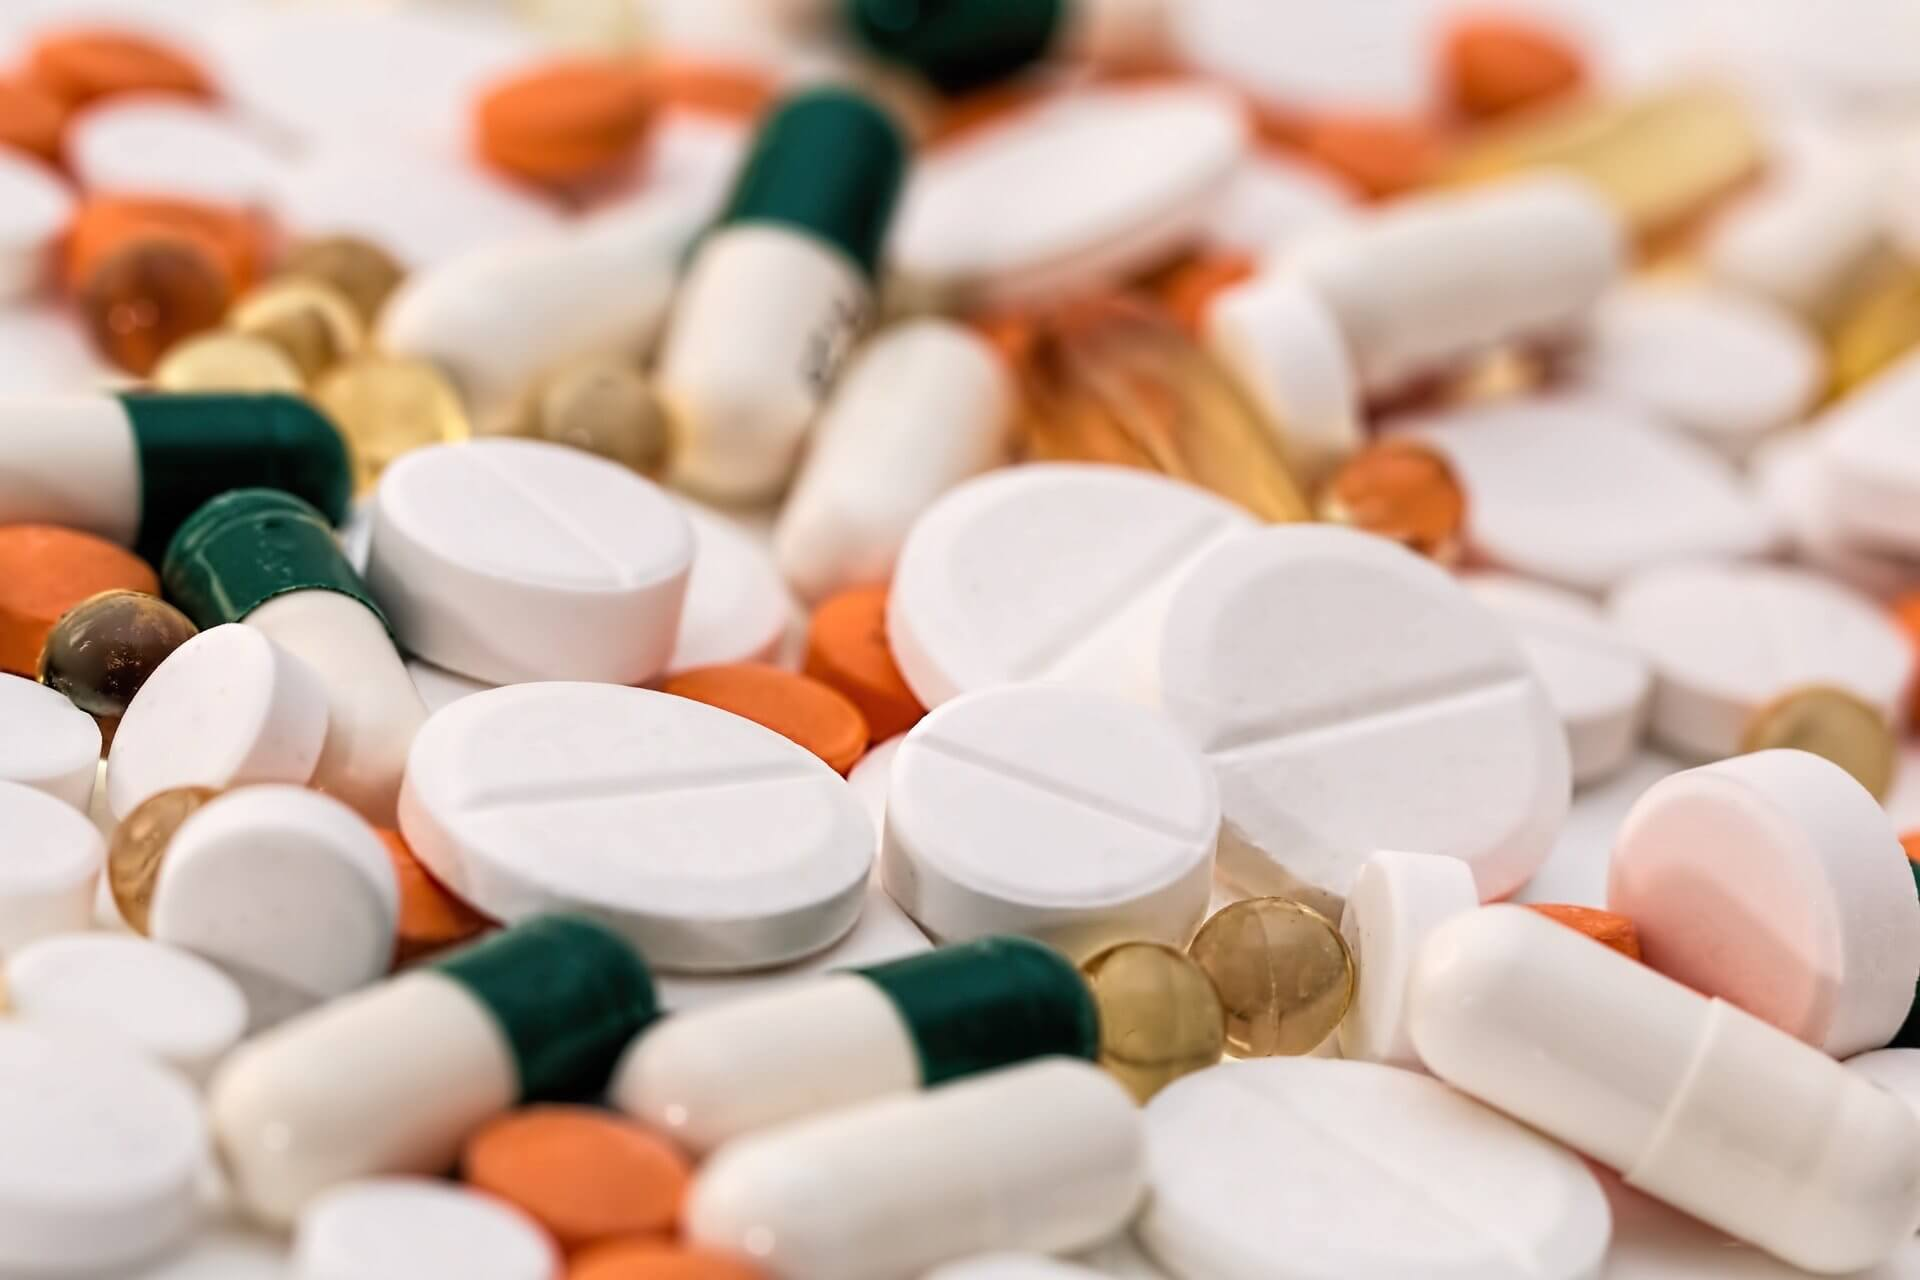 Antibiotics were once miracle drugs, but are now losing their ability to cure patients of infections.